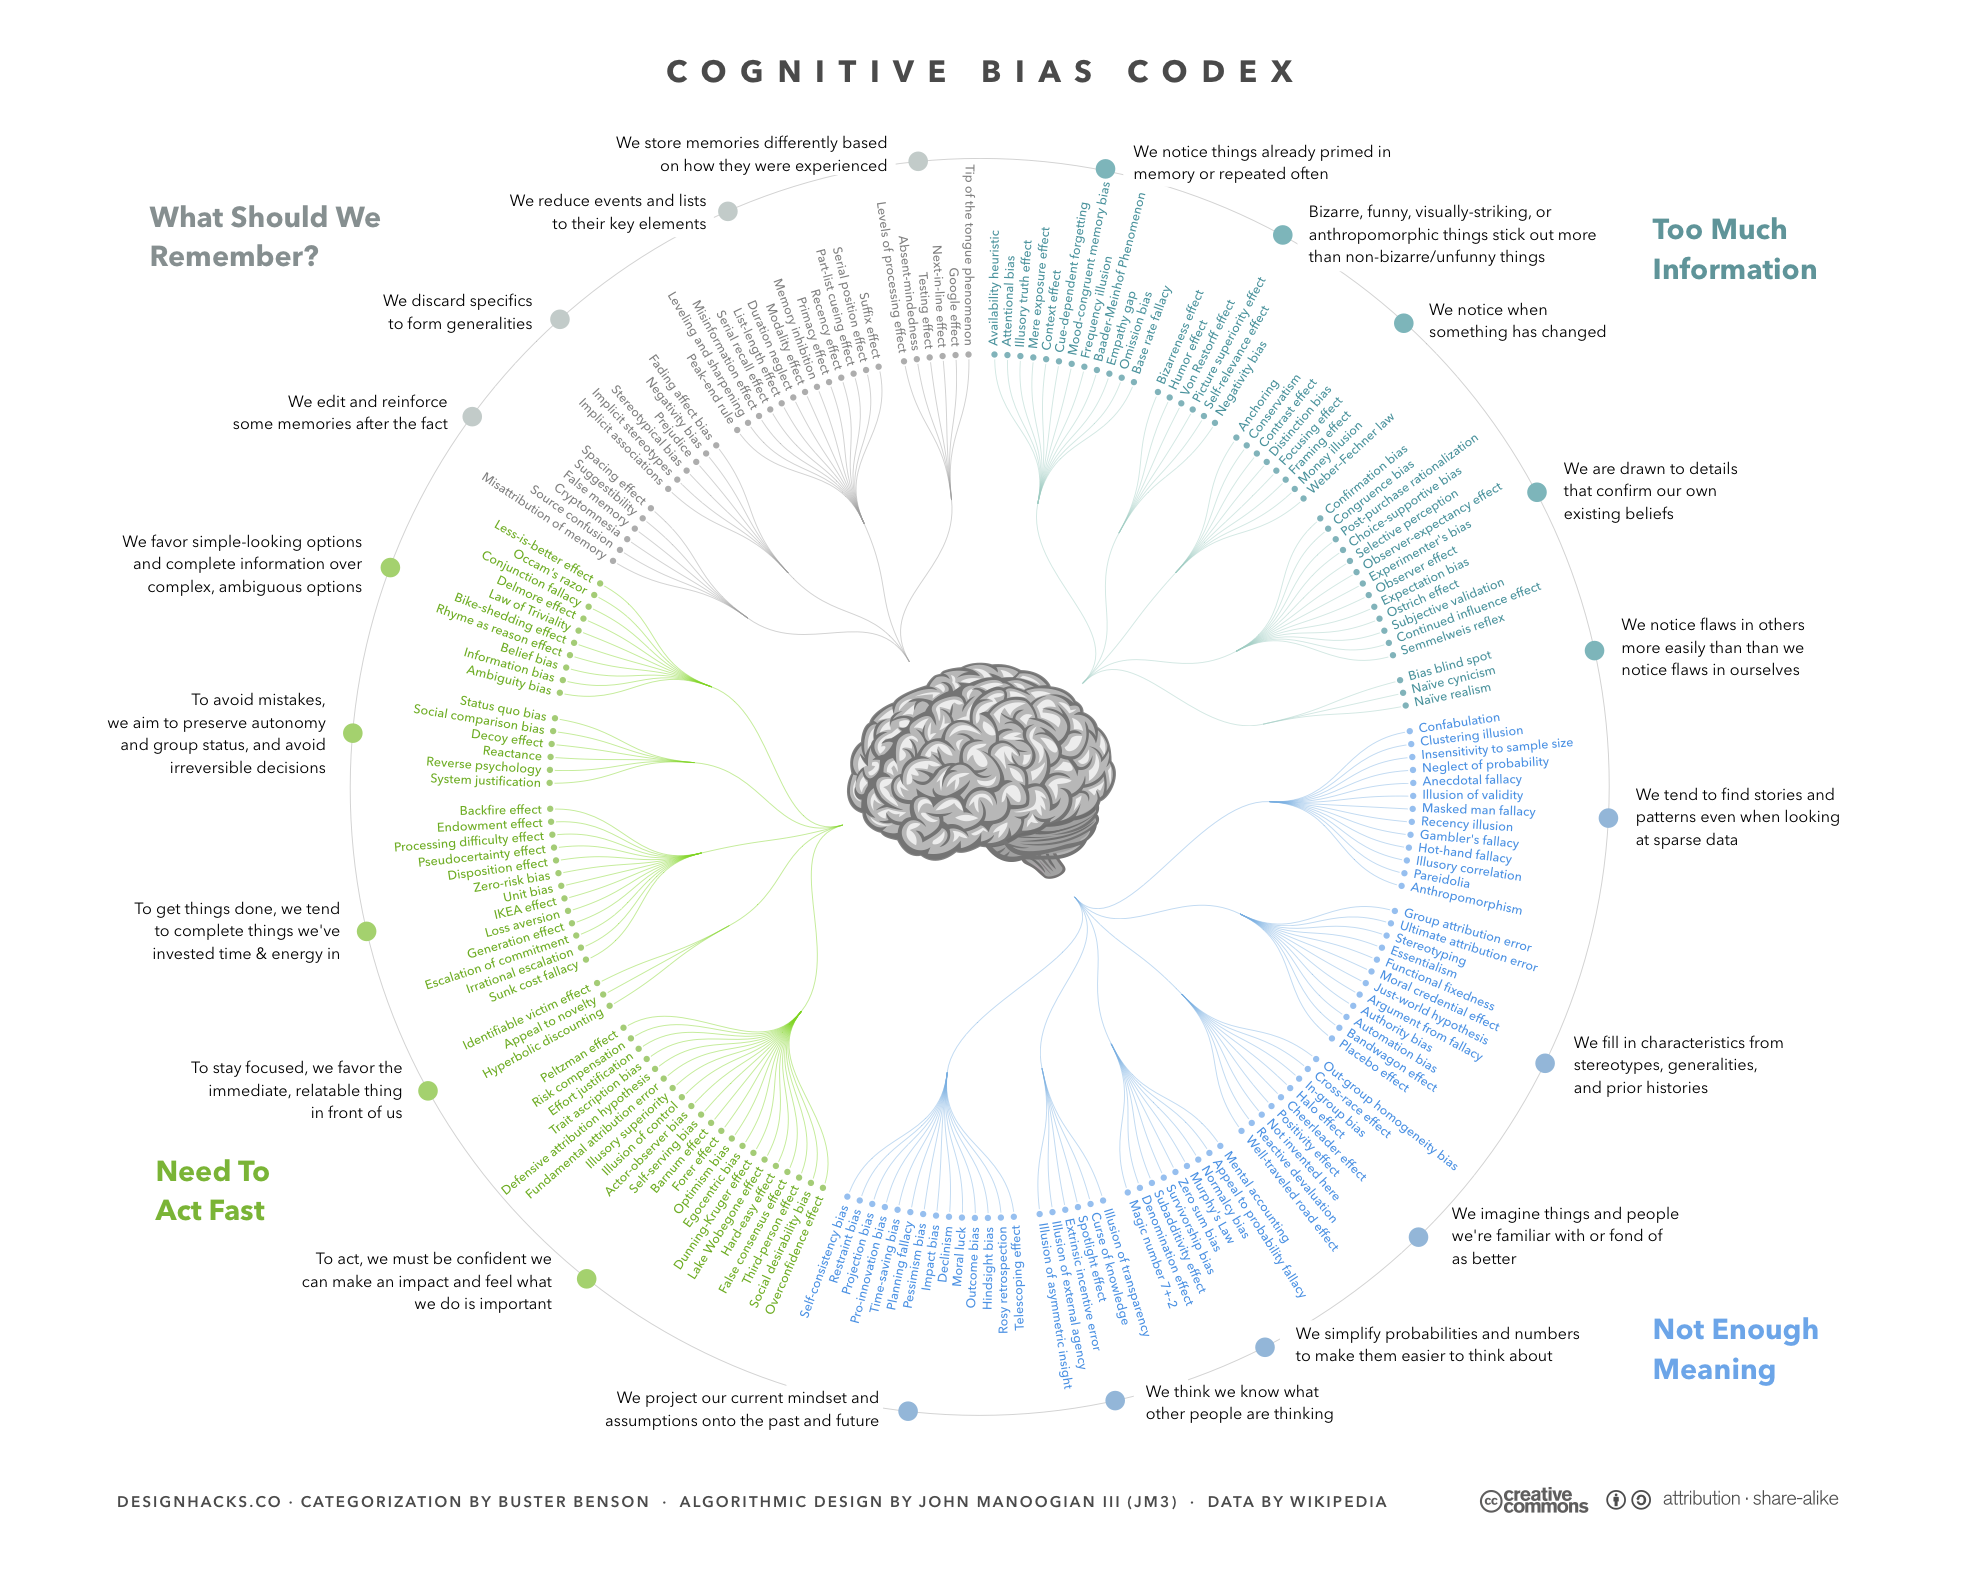 diagram showing cognitive biases and their relationships